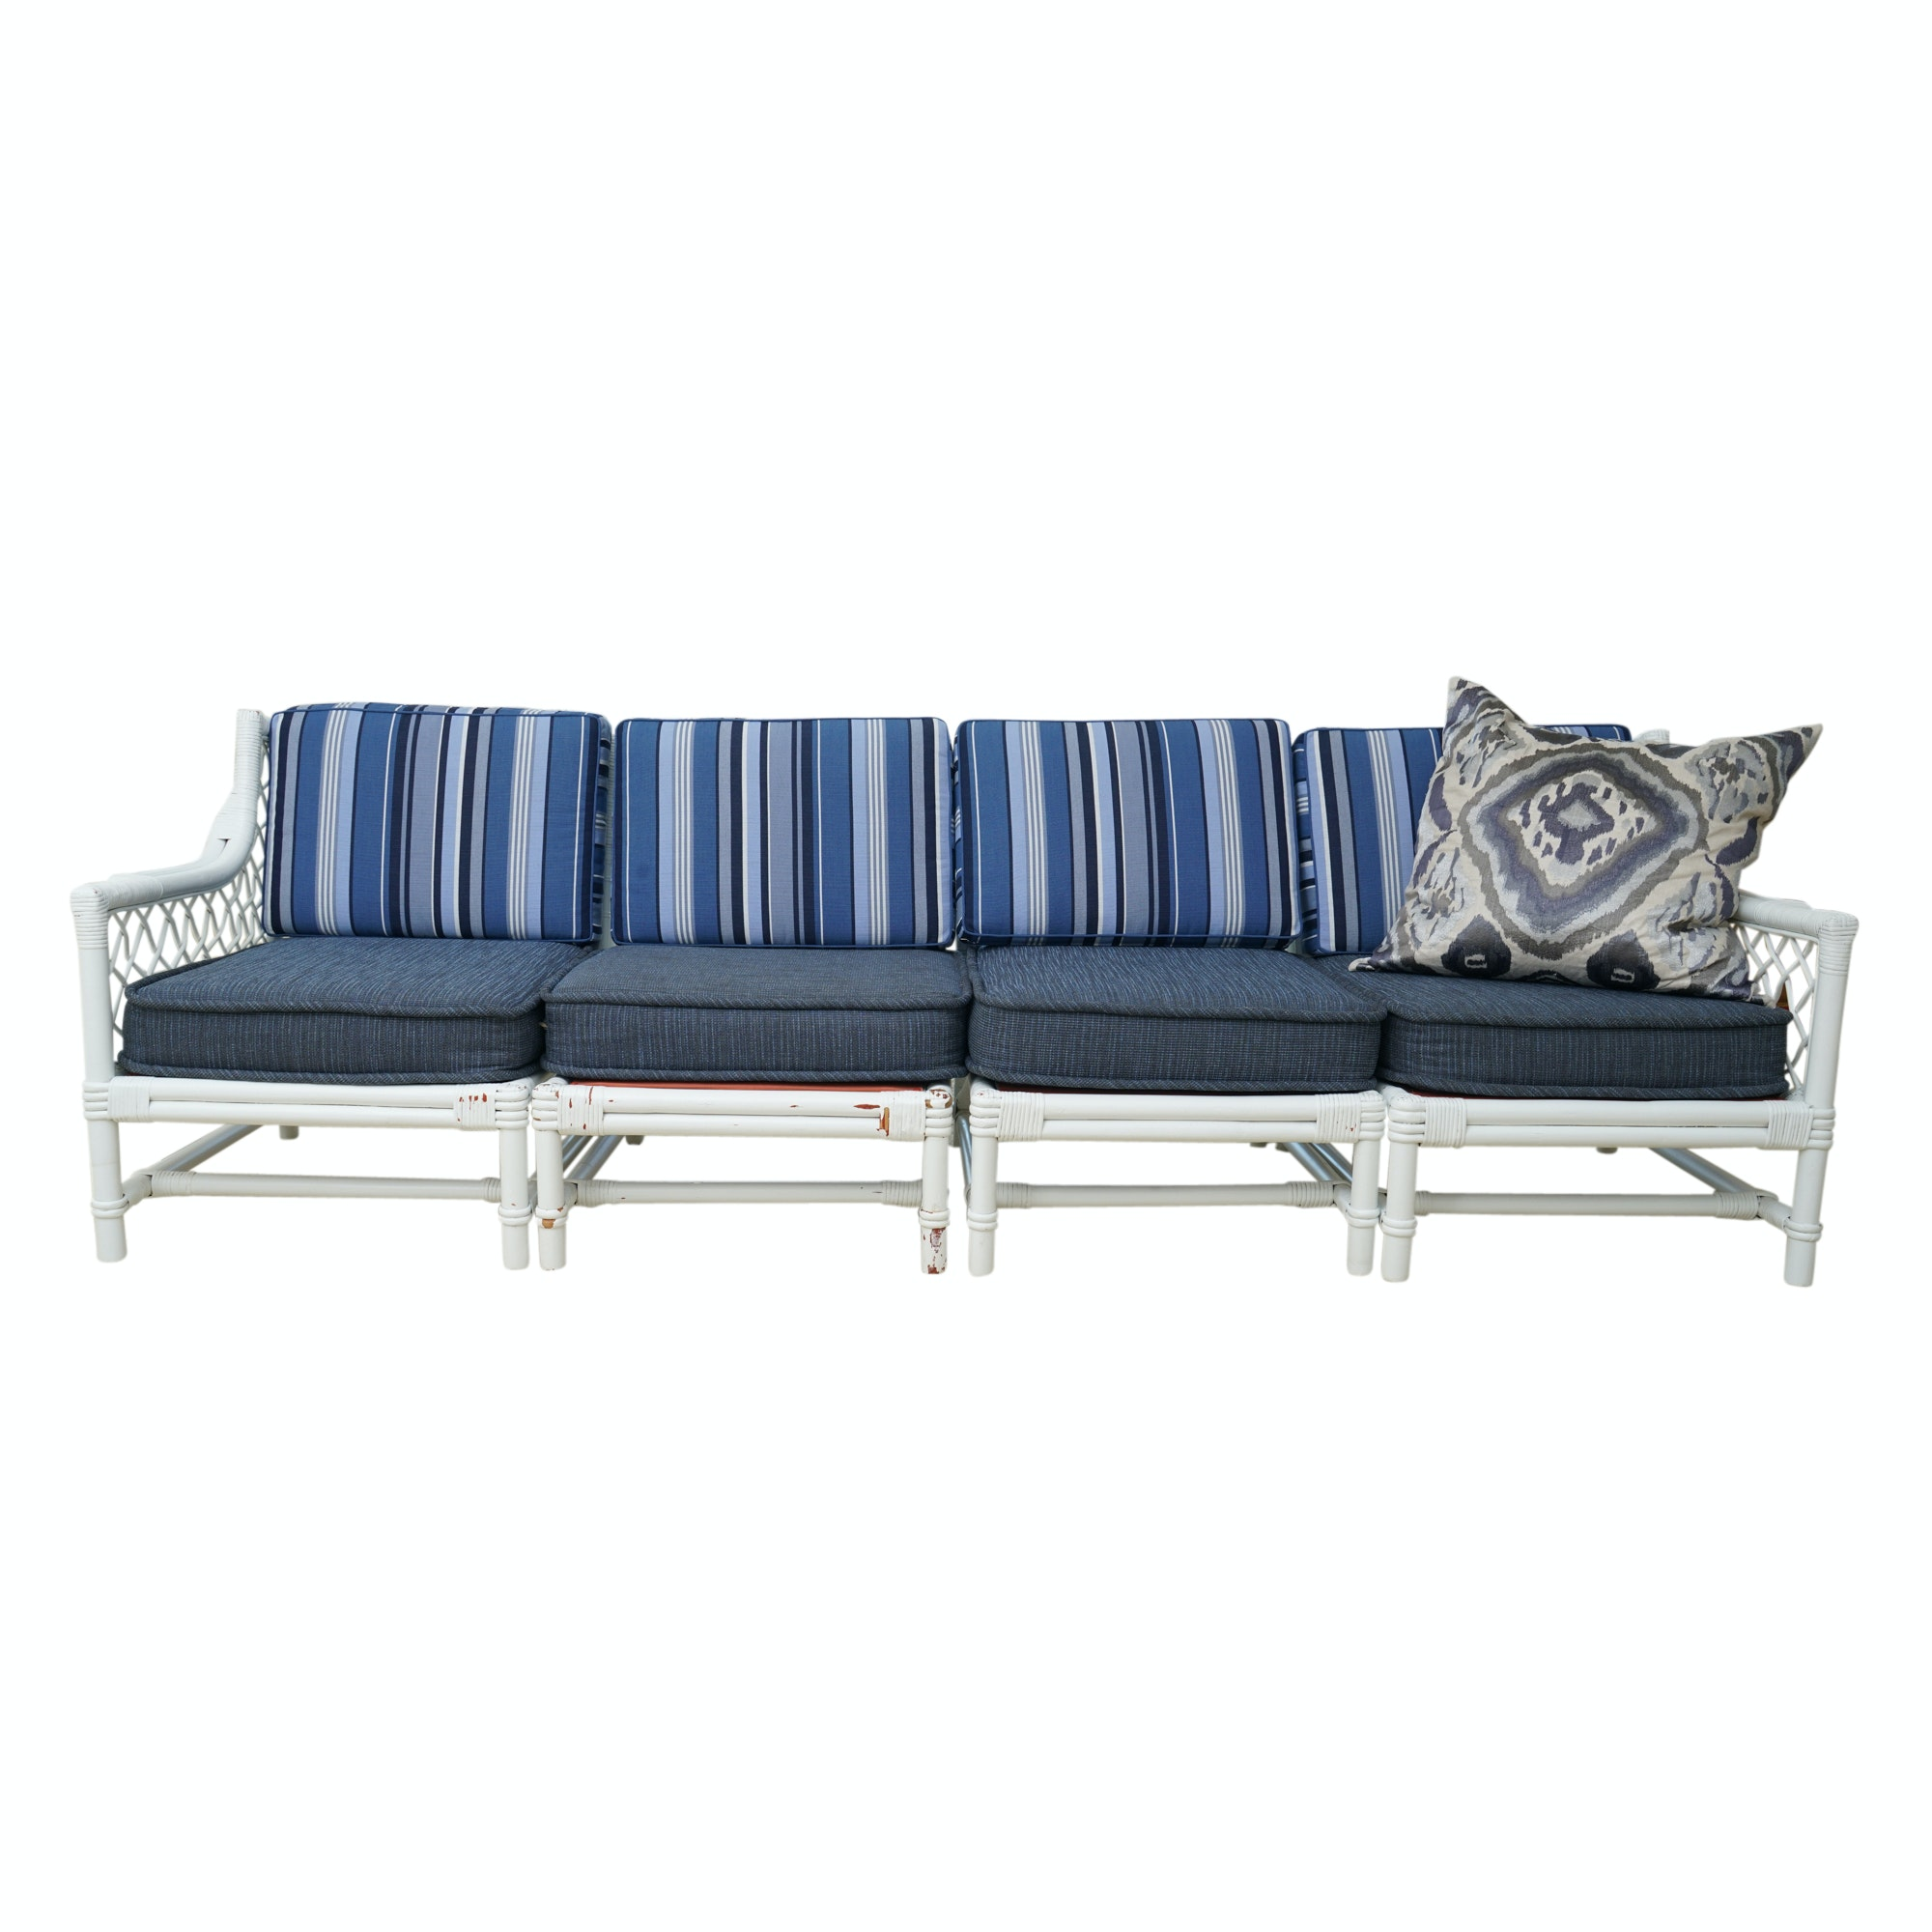 Modular Wicker Patio Sofa